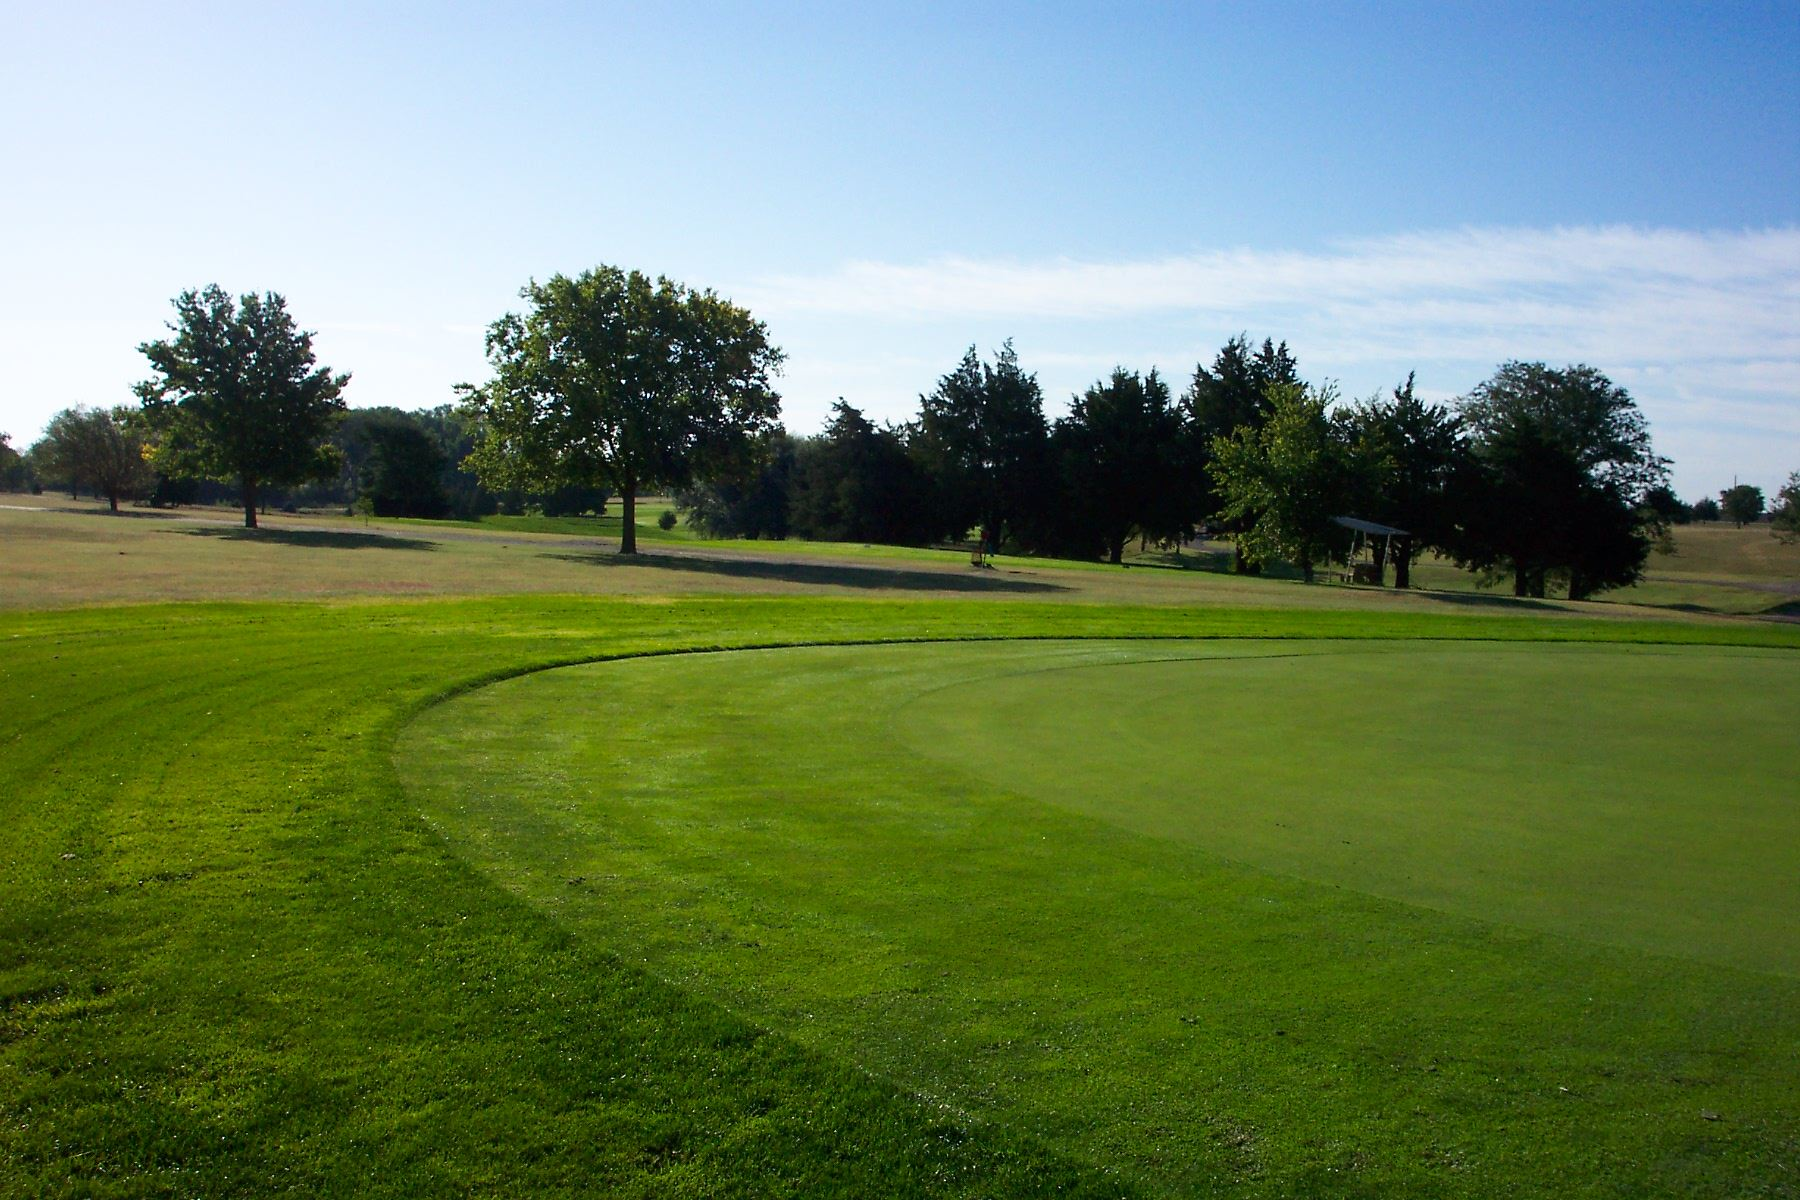 One of the greens at the Oakley Golf Course with trees in the background